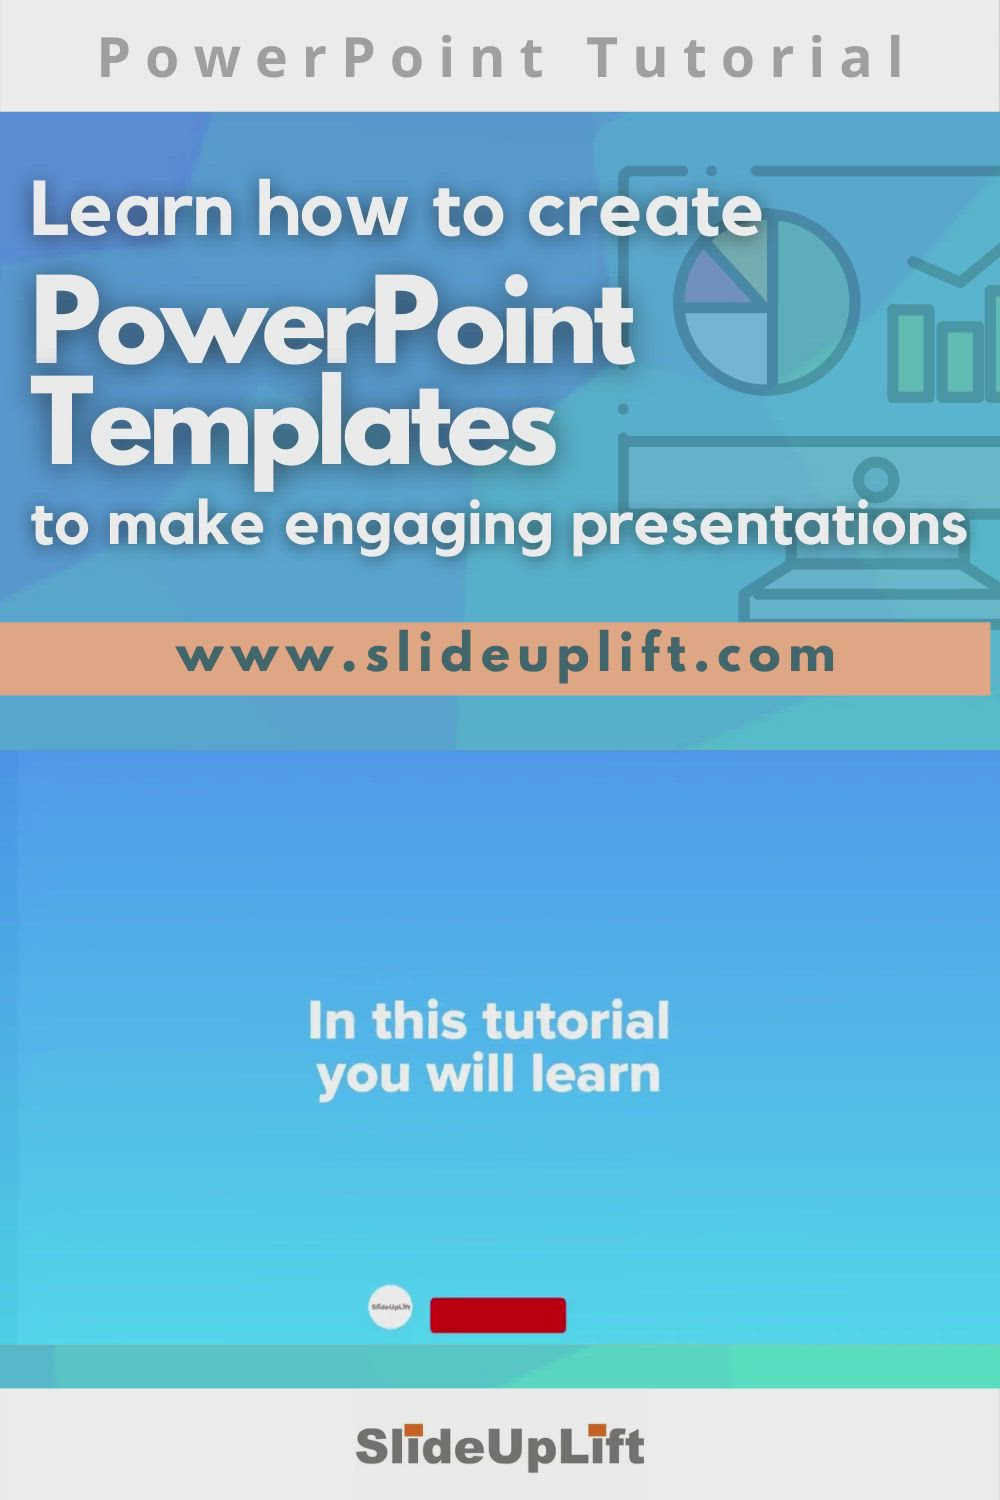 Learn How To Create A Powerpoint Template To Build Engaging Presentations Video In 2021 Presentation Powerpoint Templates Create Powerpoint Template How to create powerpoint template